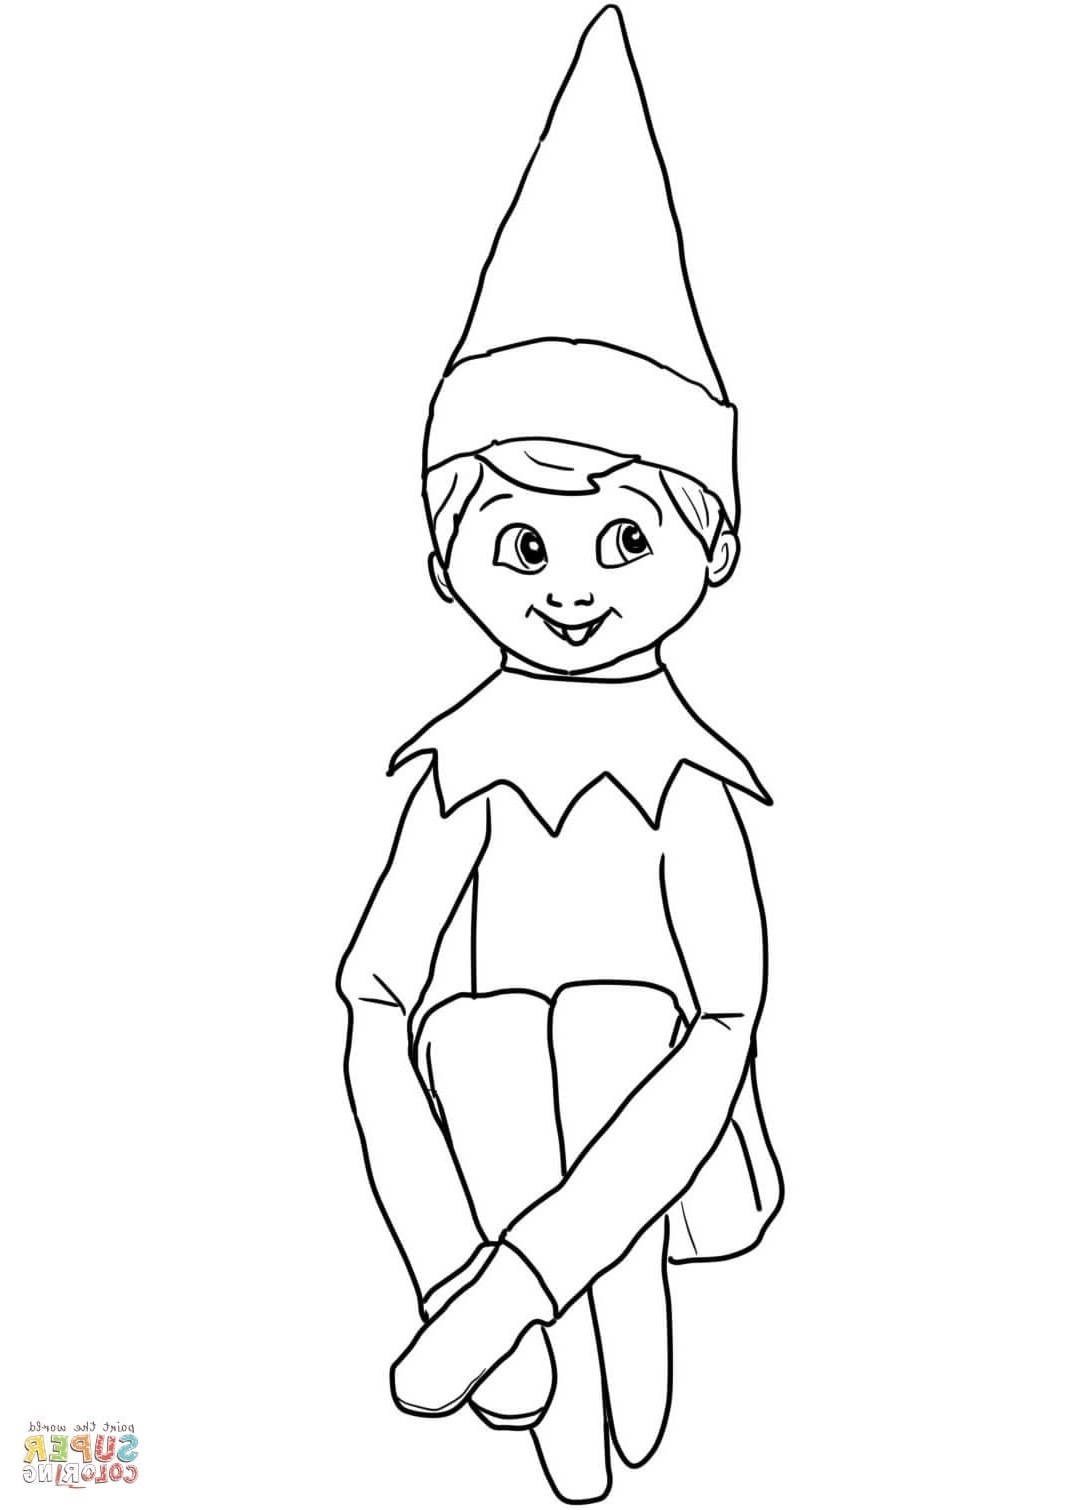 Elf Coloring Pages Printable Coloring Ideas Elf Coloring Pages Printable On Theelf For Kids